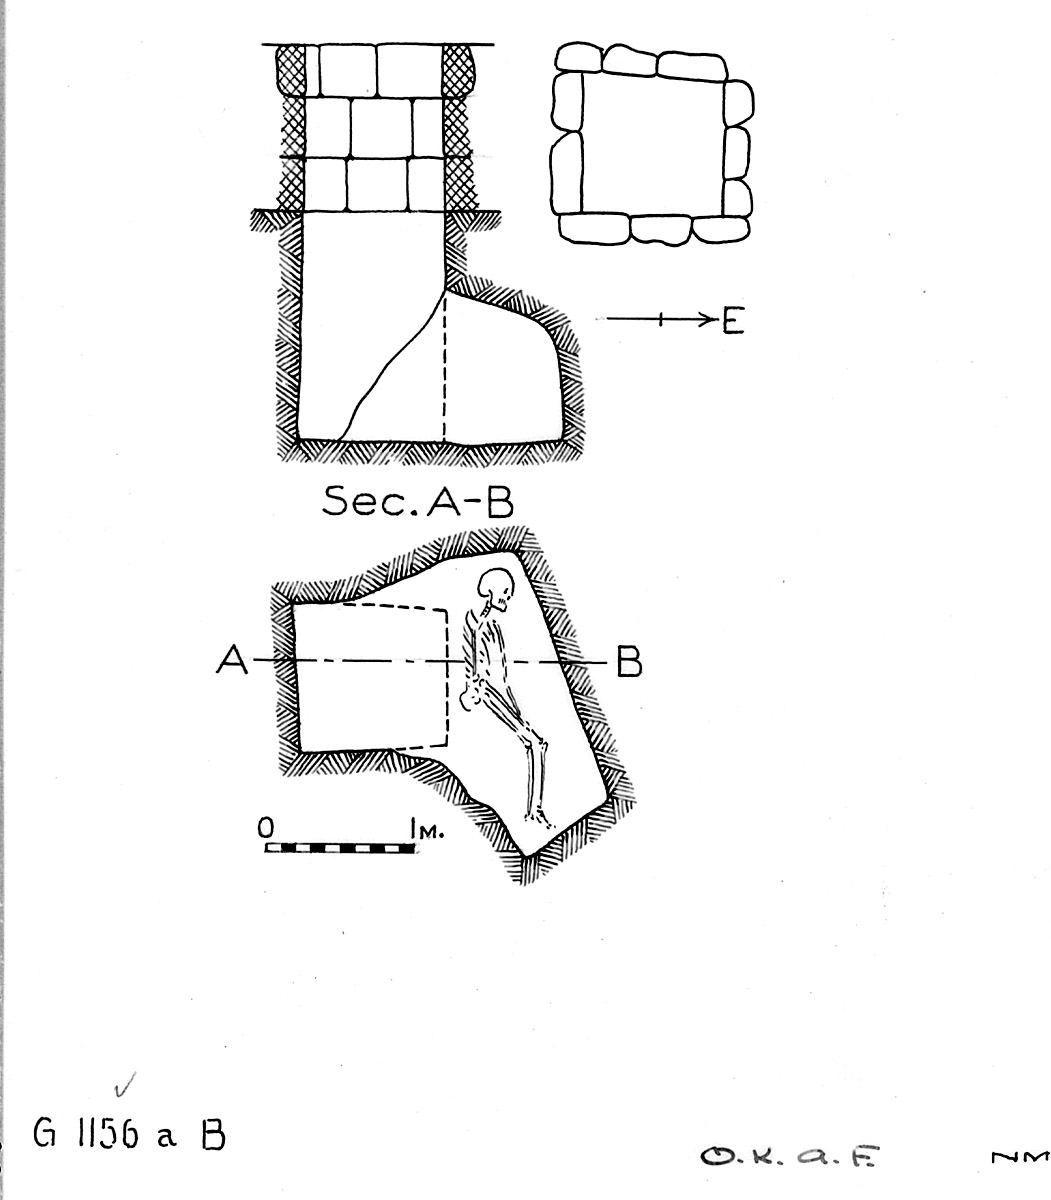 Maps and plans: G 1156a, Shaft B